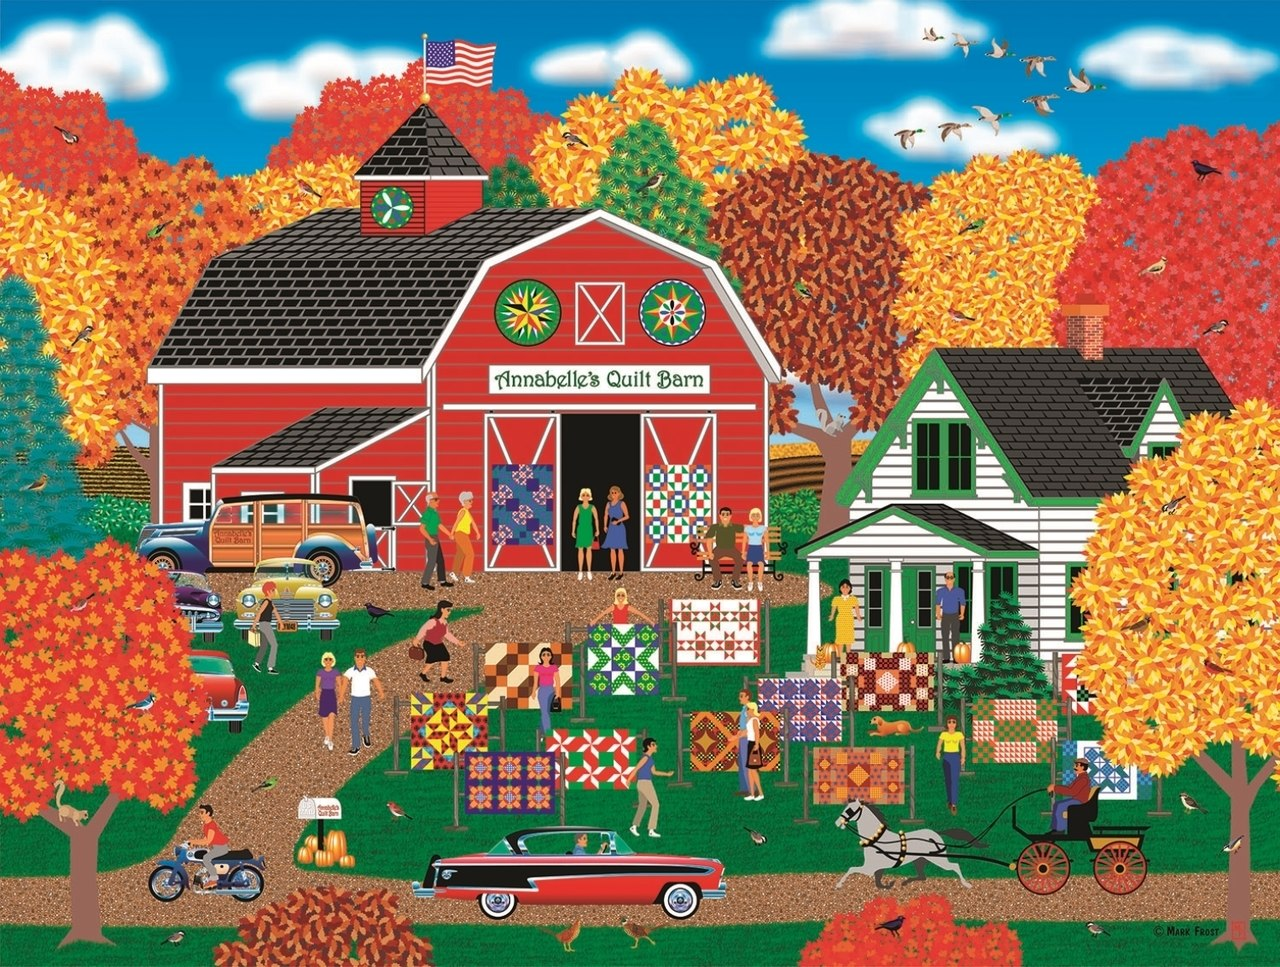 Annabelle's Quilt Barn - 1000pc Jigsaw Puzzle By Sunsout  			  					NEW